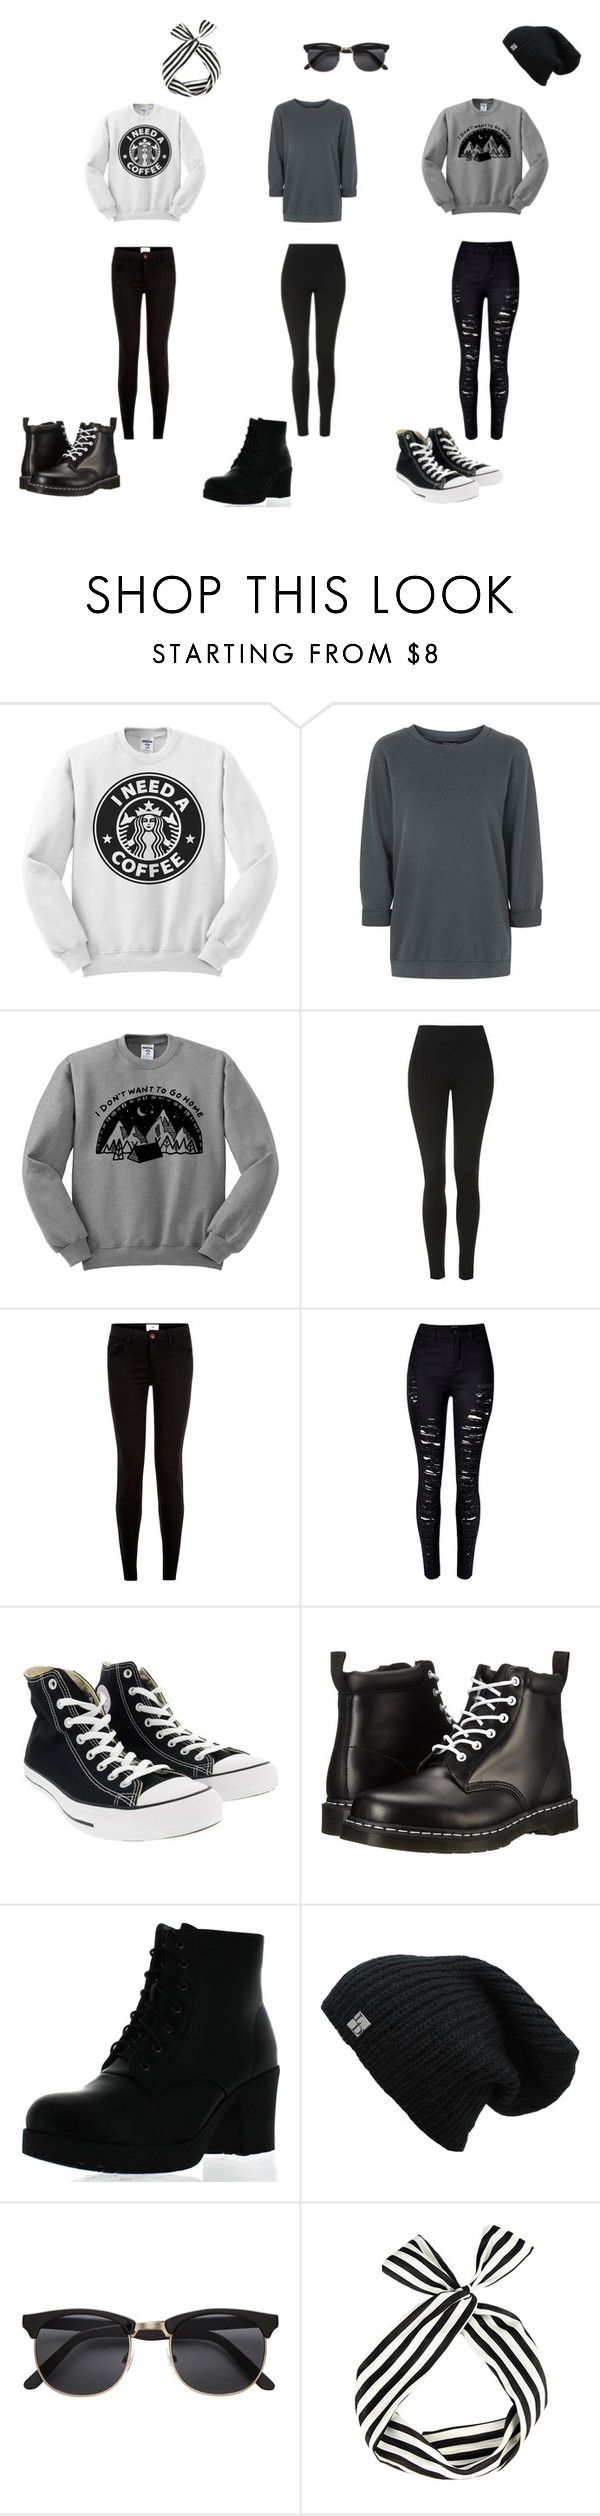 """""""#31"""" by aliviaw on Polyvore featuring Topshop, New Look, WithChic, Converse, Dr. Martens and Refresh"""